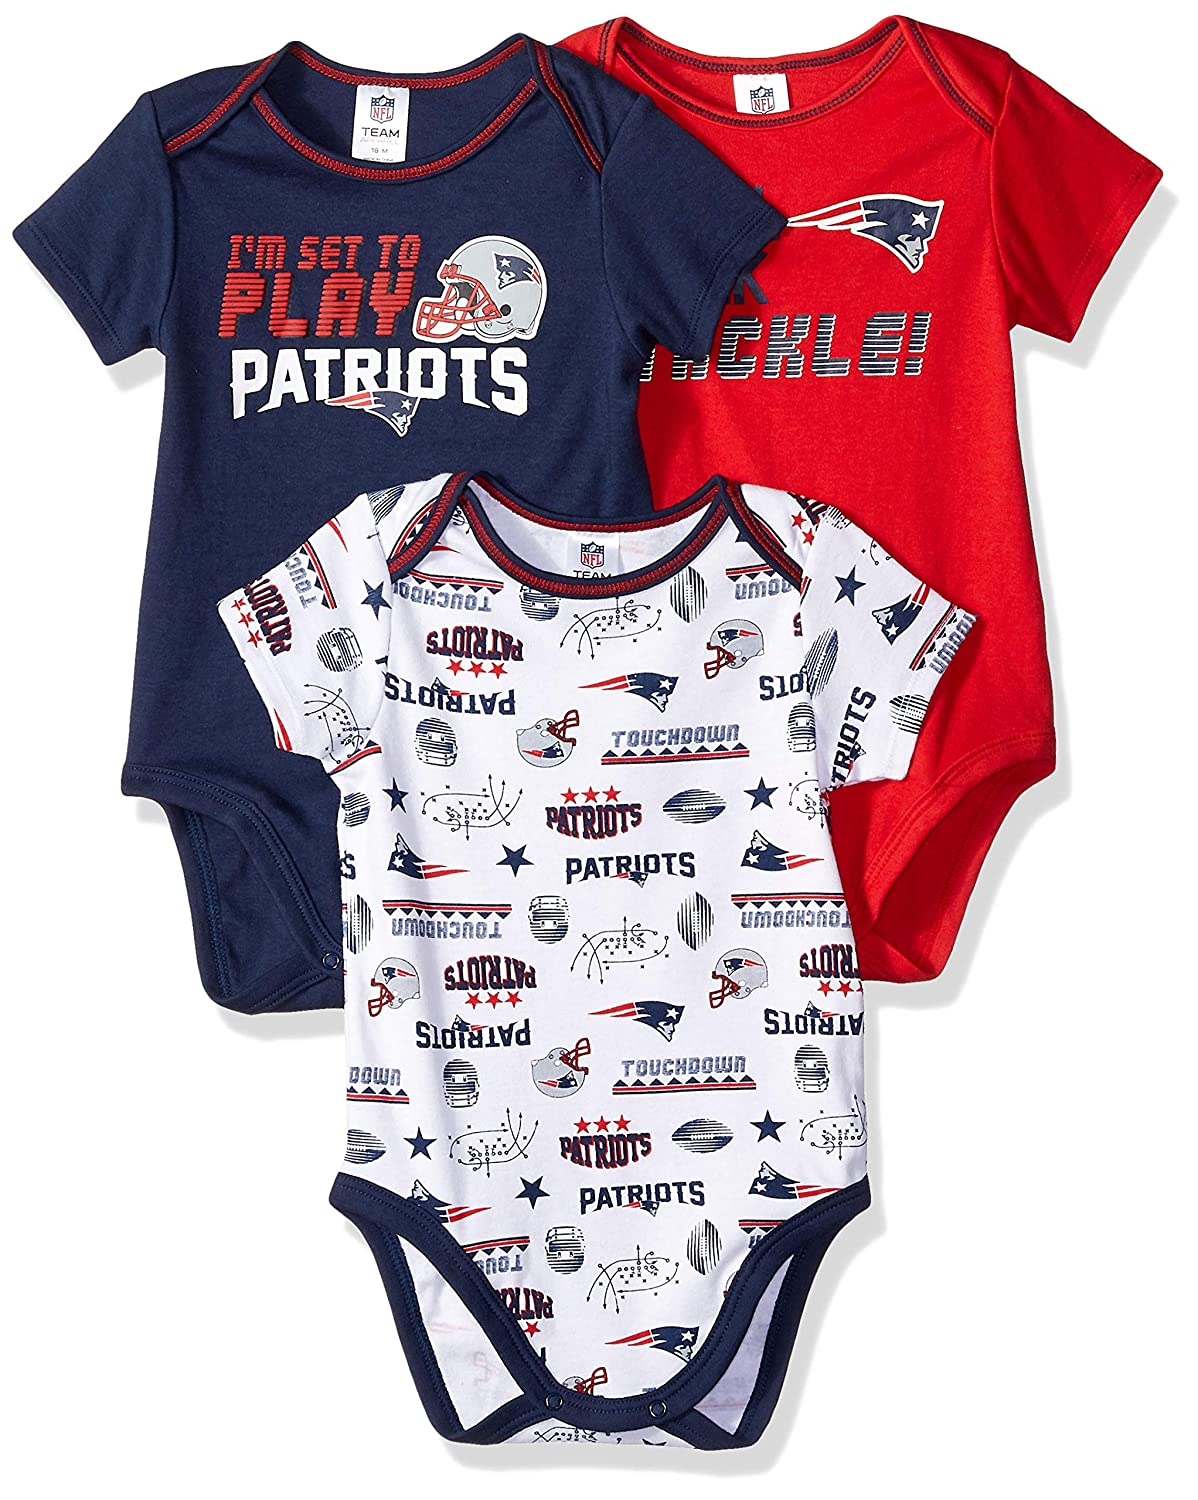 new product b8bdf 48e30 Gerber New England Patriots Baby/Infant 3 Piece Bodysuit Set